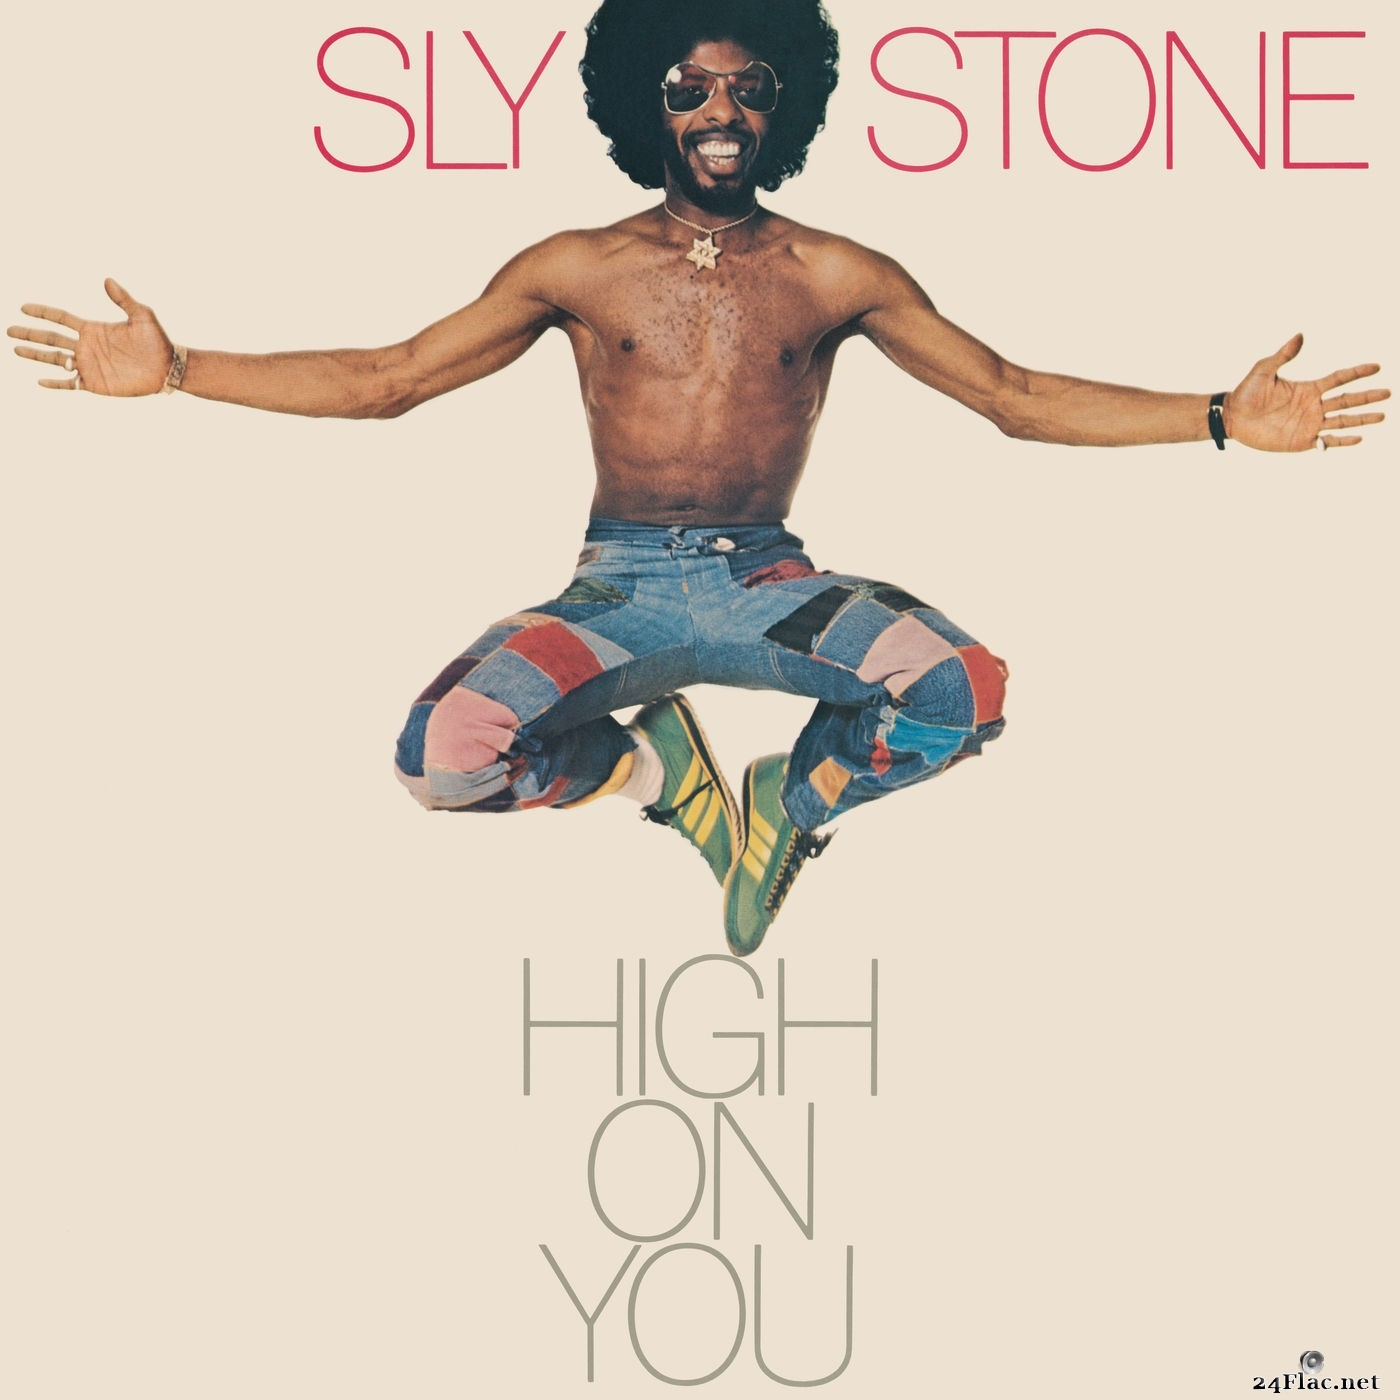 Sly Stone - High On You (2017) Hi-Res